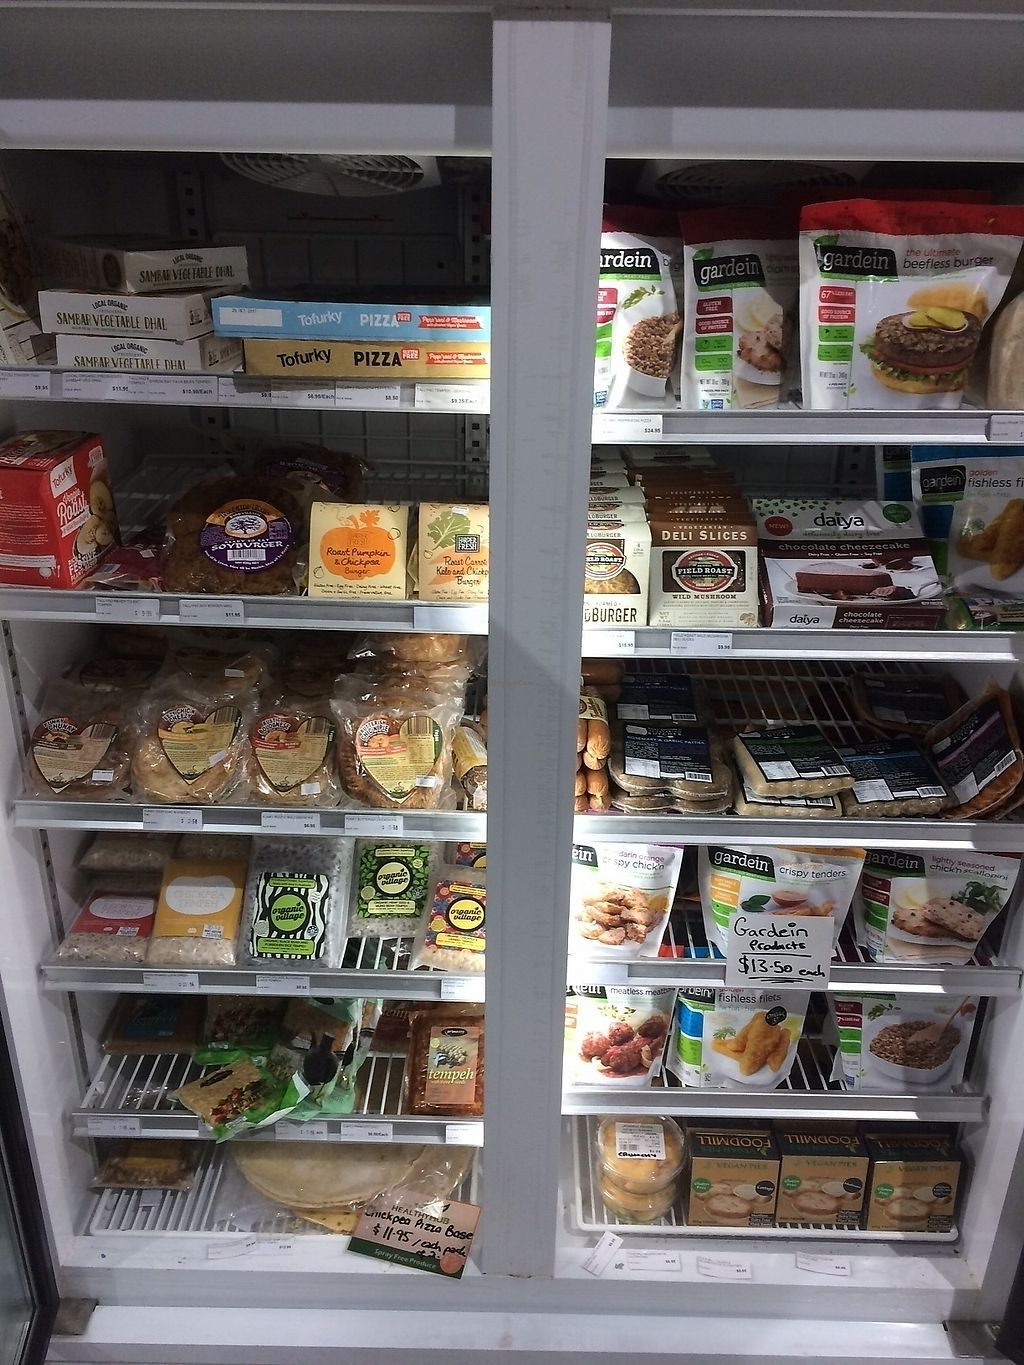 """Photo of The Healthy Hub  by <a href=""""/members/profile/AlisonDonnelly"""">AlisonDonnelly</a> <br/>Vegan meats & frozen products freezer <br/> November 20, 2017  - <a href='/contact/abuse/image/67627/327362'>Report</a>"""